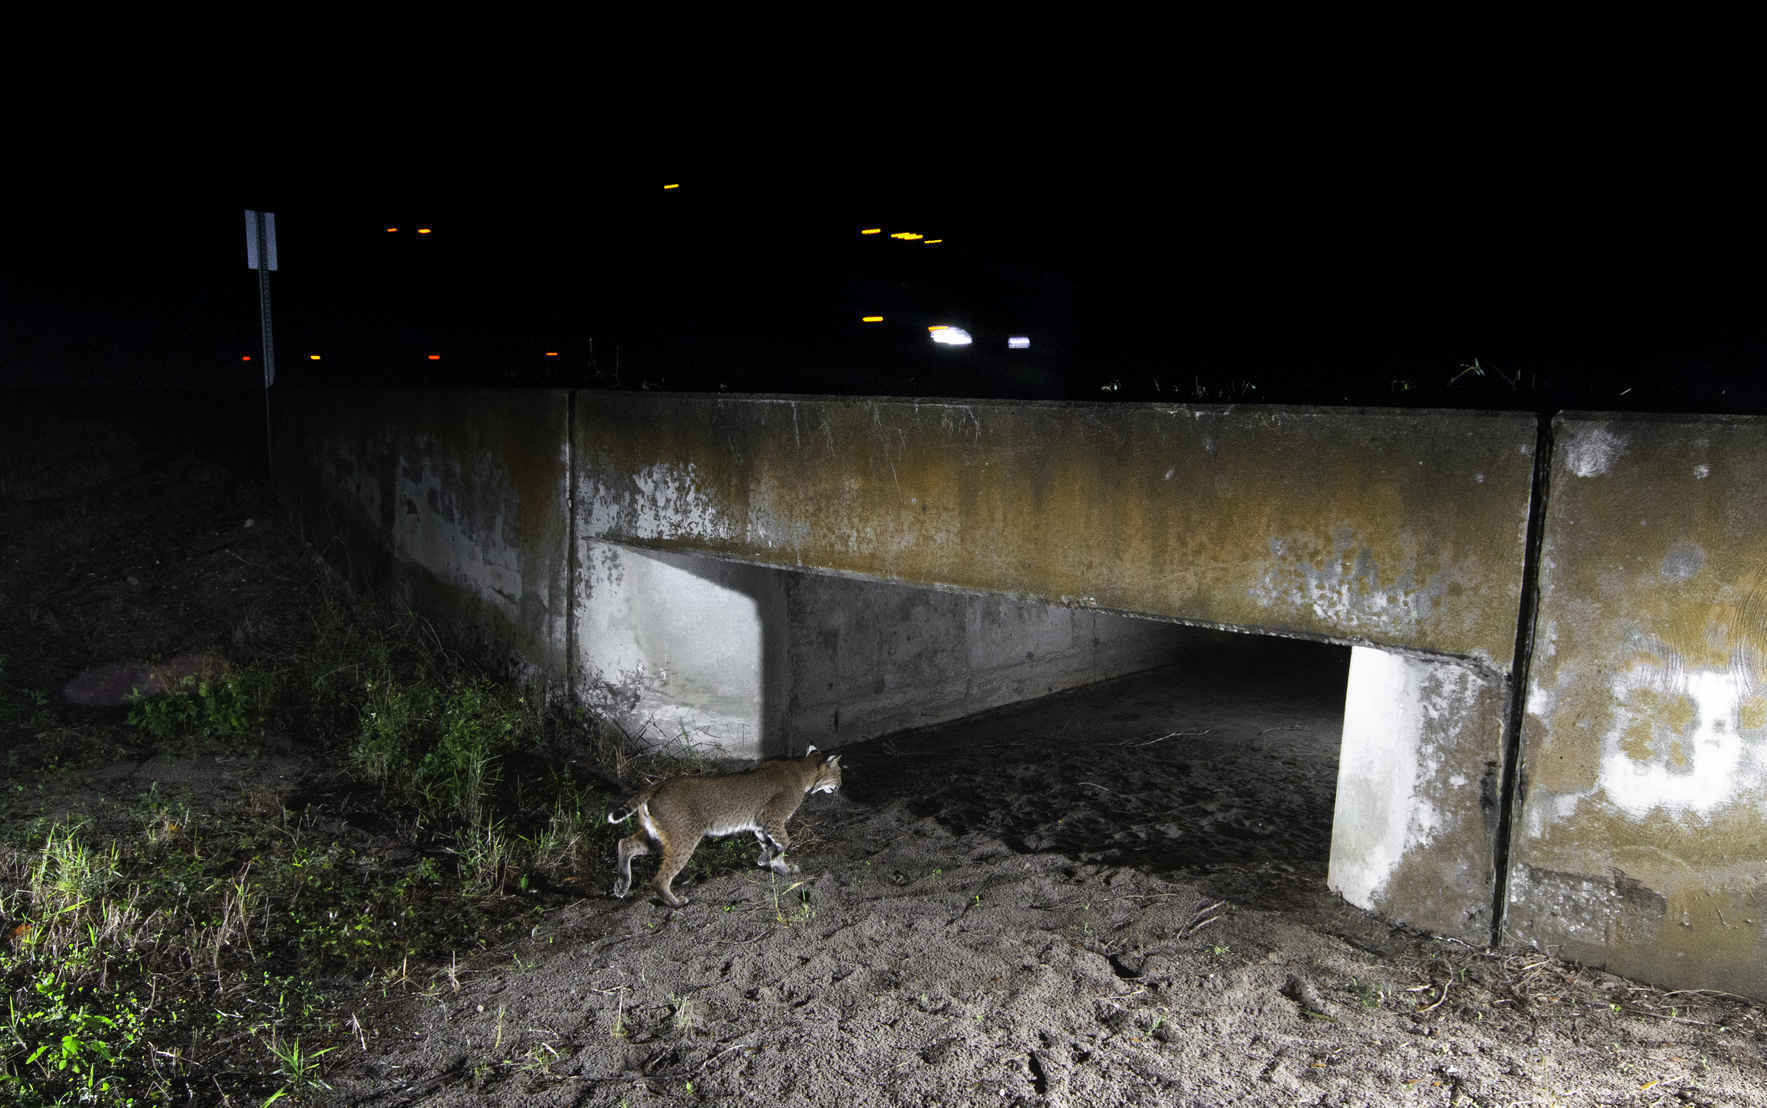 Donate now to help ensure animals can safely cross our roads! image